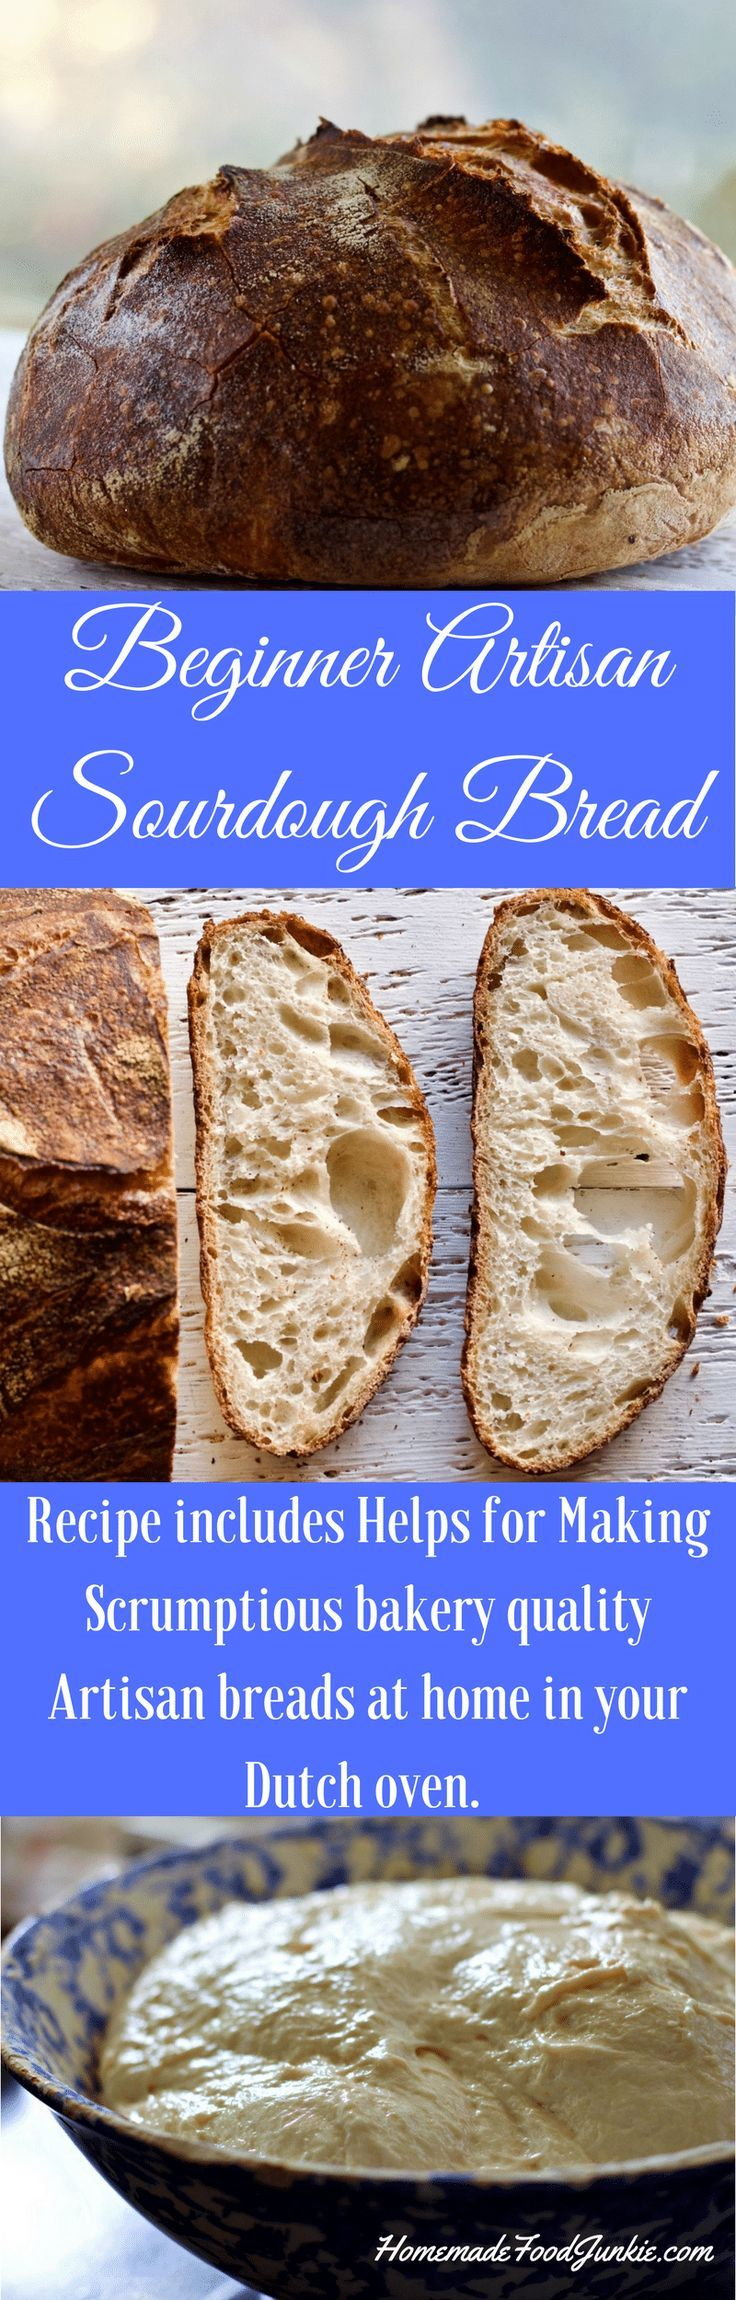 Beginner Artisan Sourdough Bread. You will never go back to store bought once you master this! This post includes complete instructions and resource links.#food #sourdough #sourdoughrecipe #sourdoughbread #artisanbread #crustybread